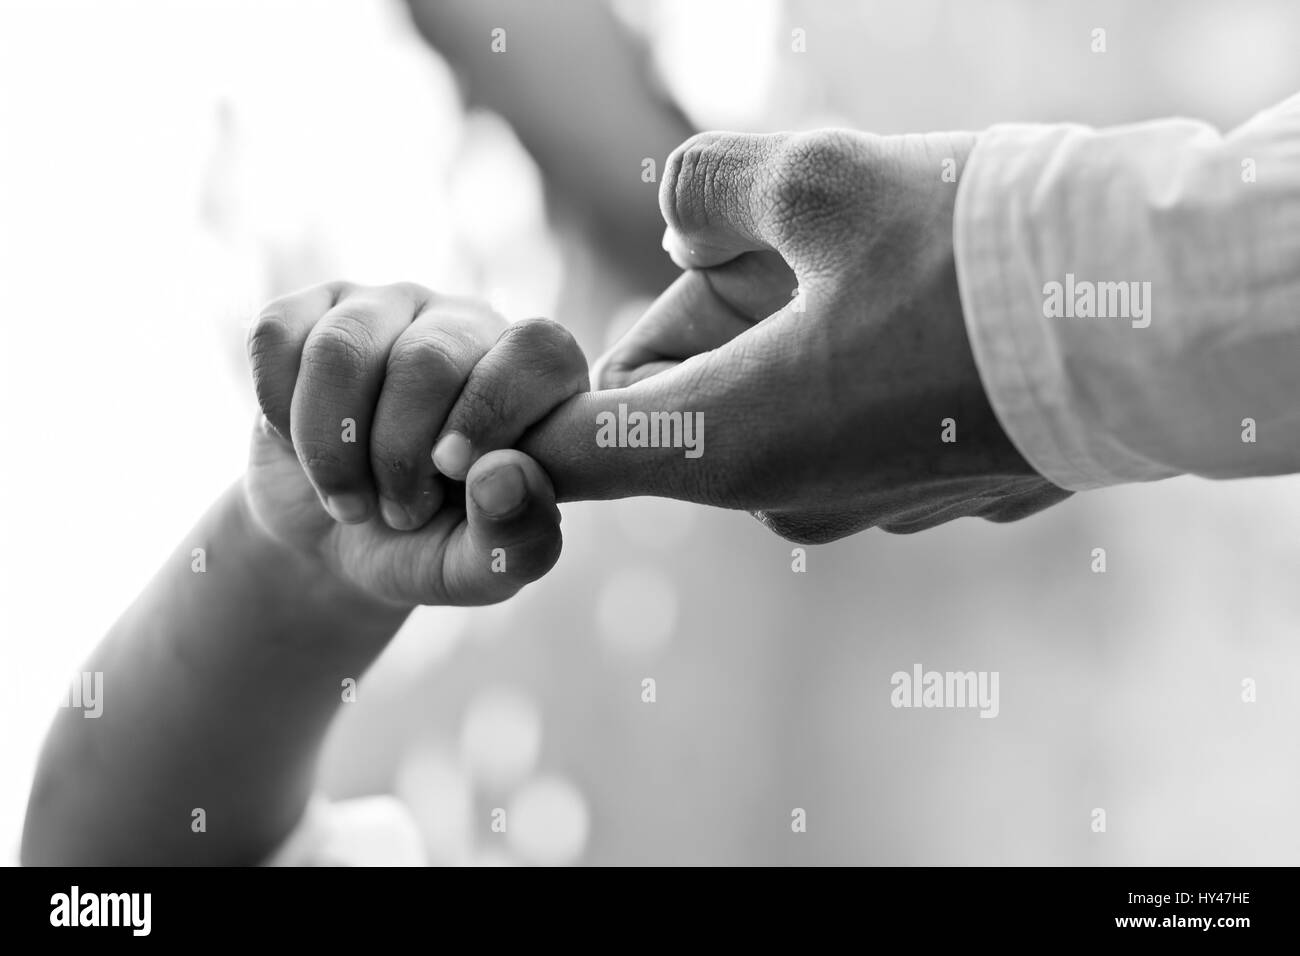 Helping hand. - Stock Image